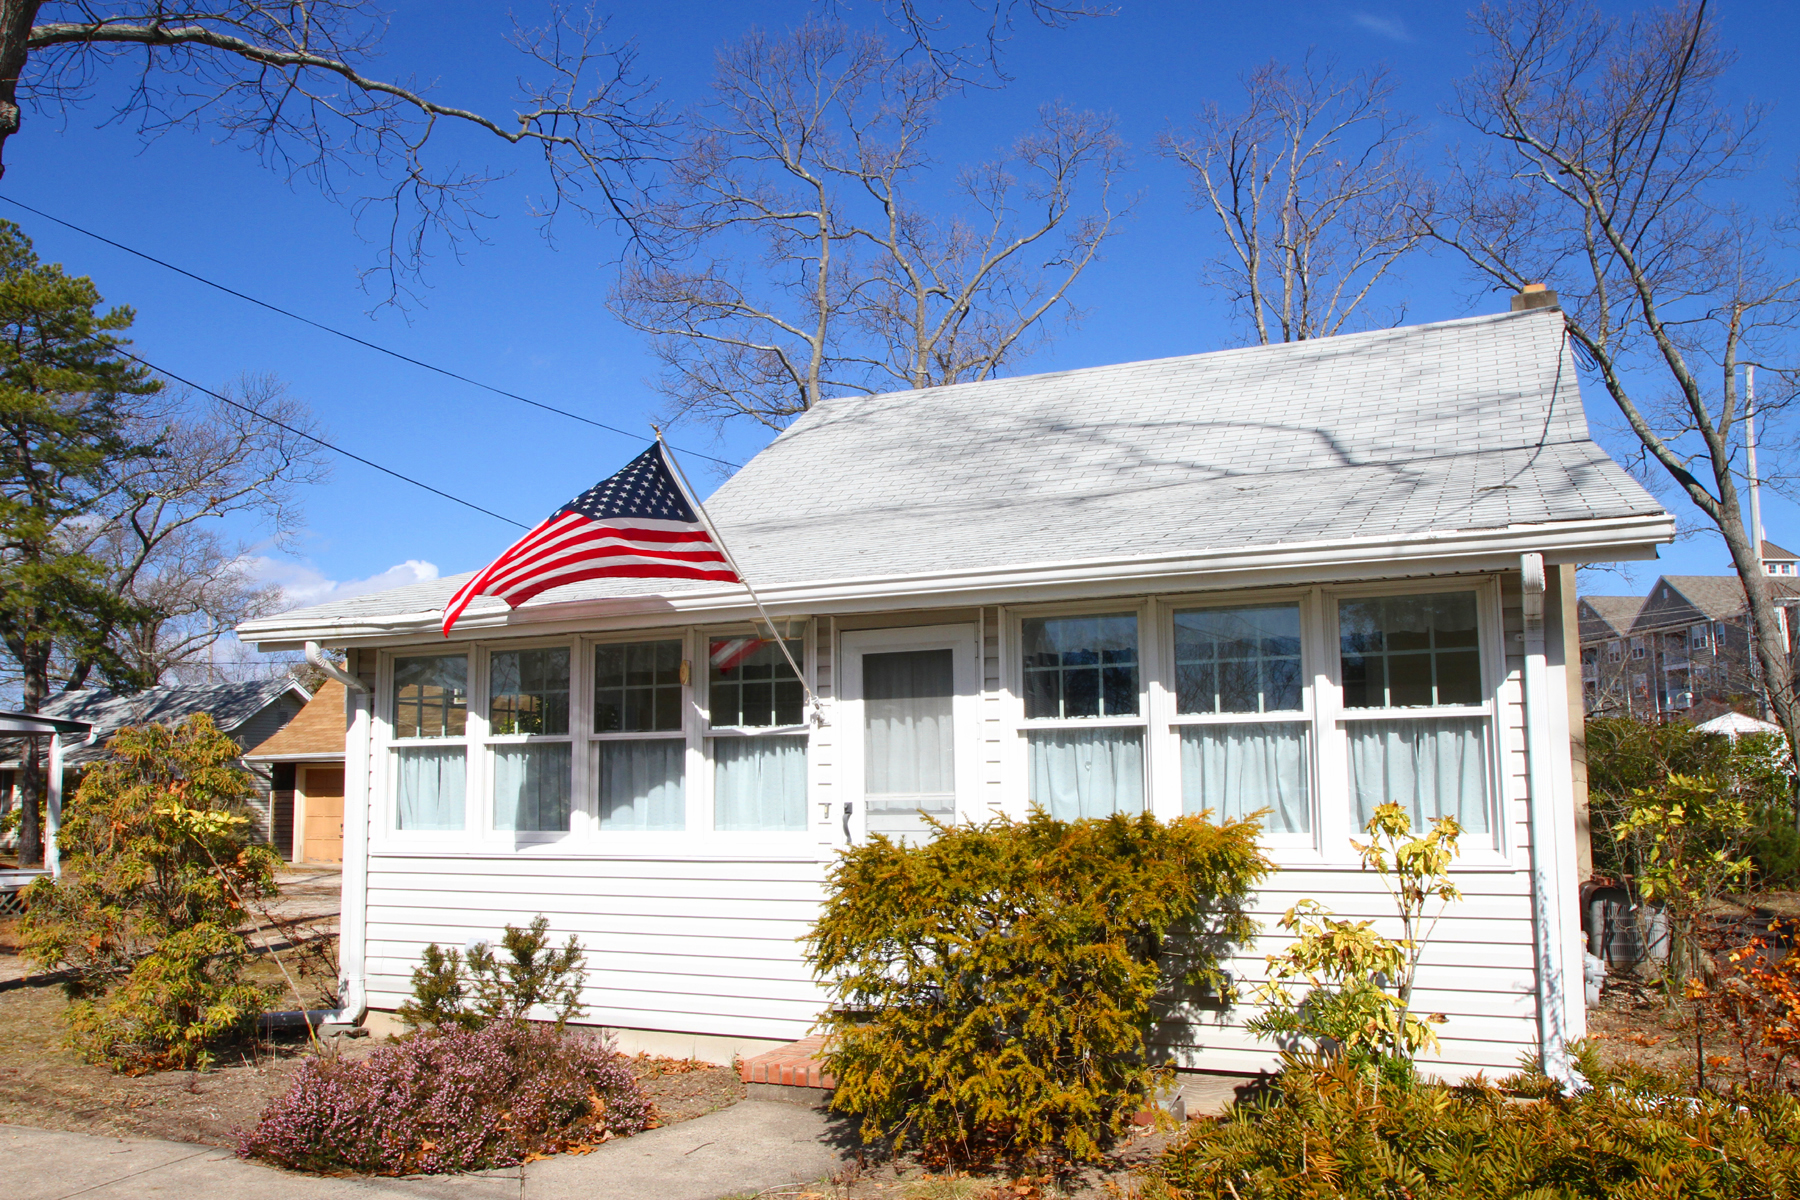 Single Family Home for Sale at Quintessential Seashore Cottage 362 Briar Road Point Pleasant, New Jersey 08742 United States